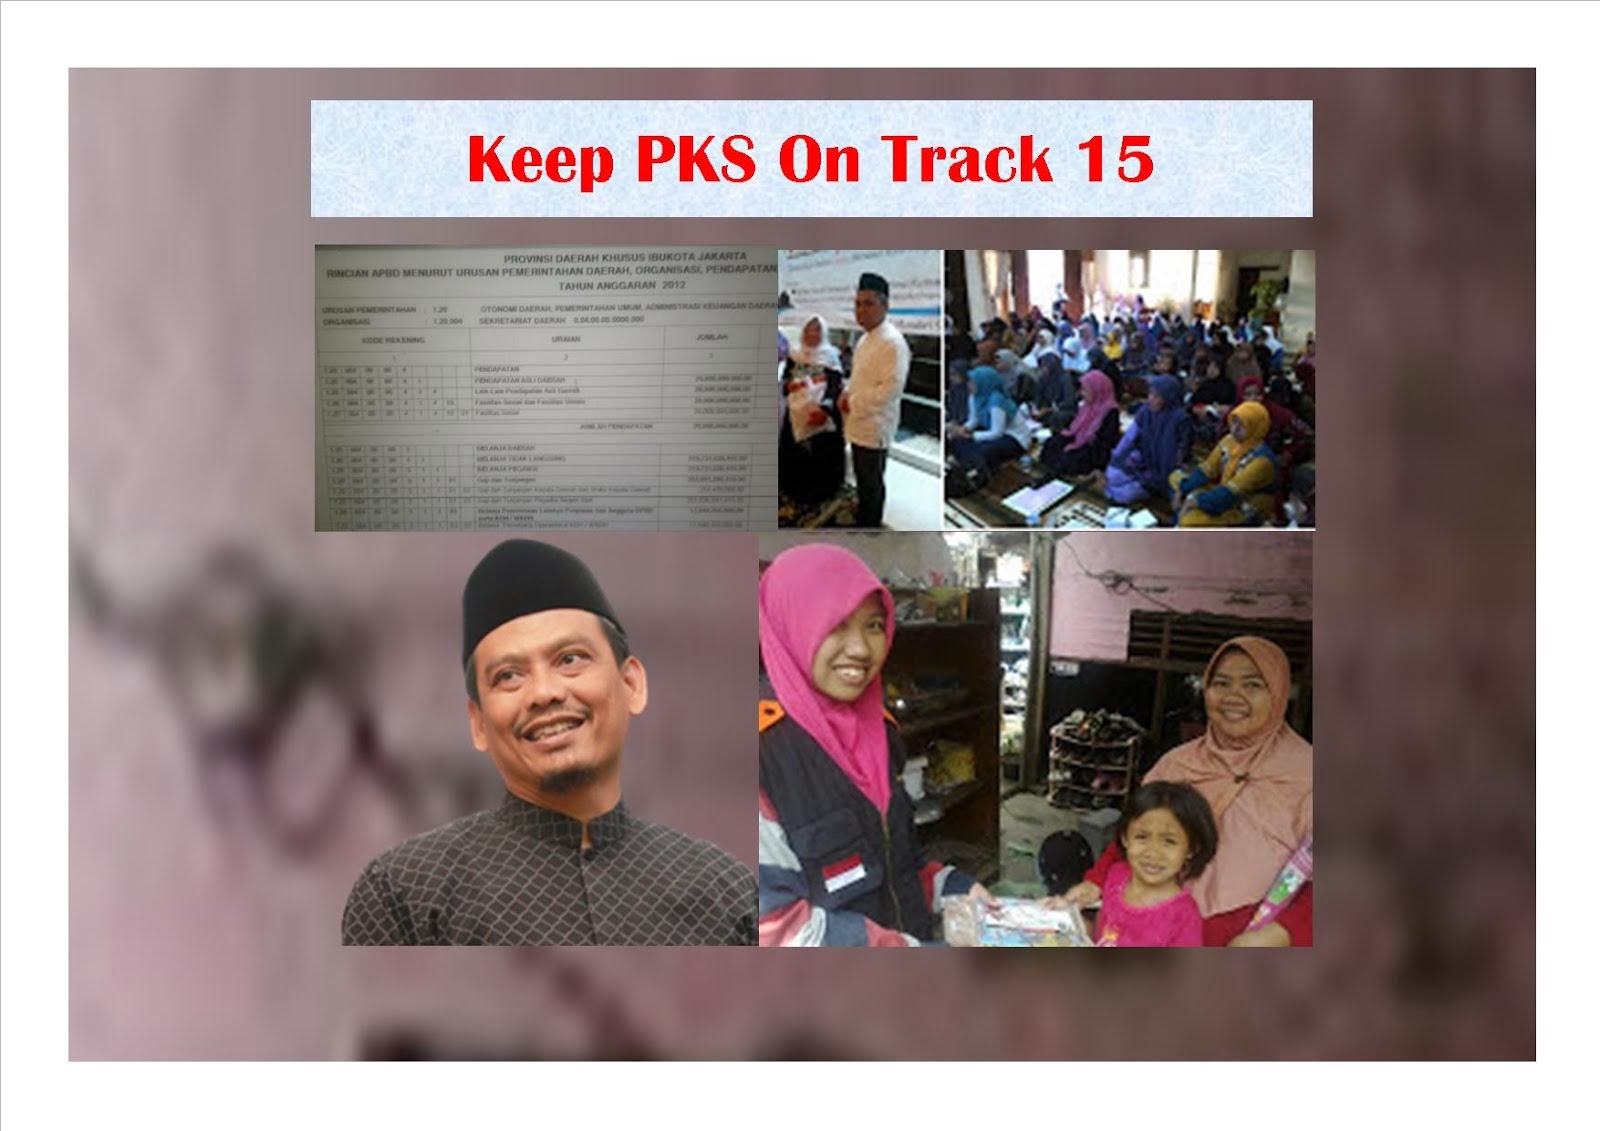 Keep PKS On Track 15